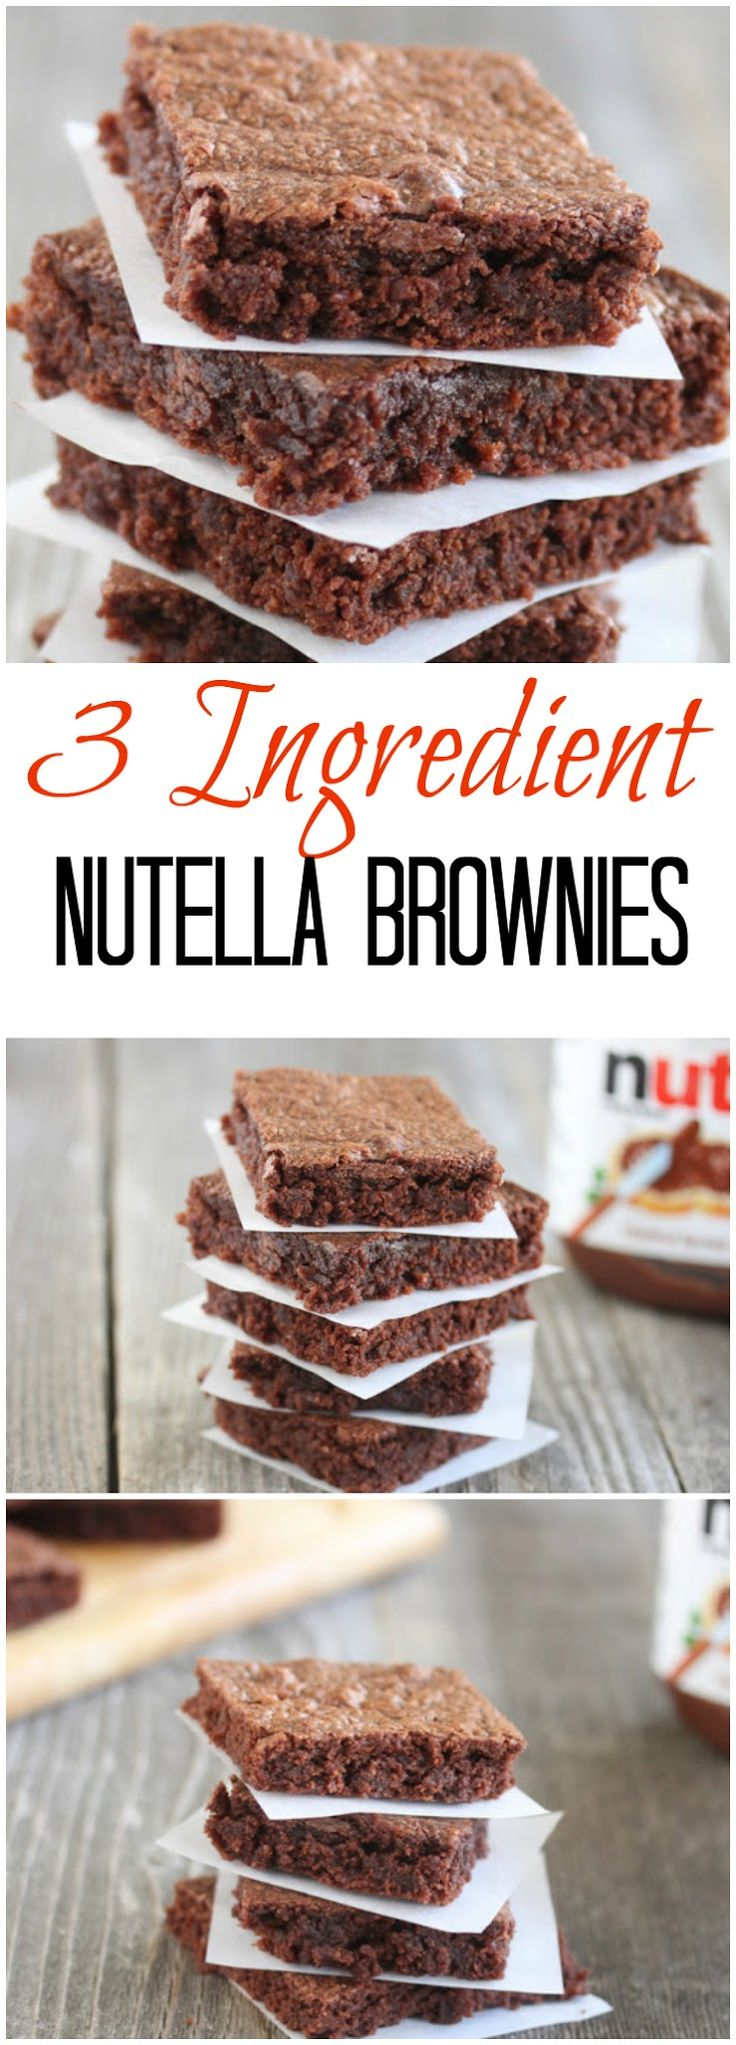 3 Ingredient Nutella brownies. These fudgy and chewy brownies are so easy to make!